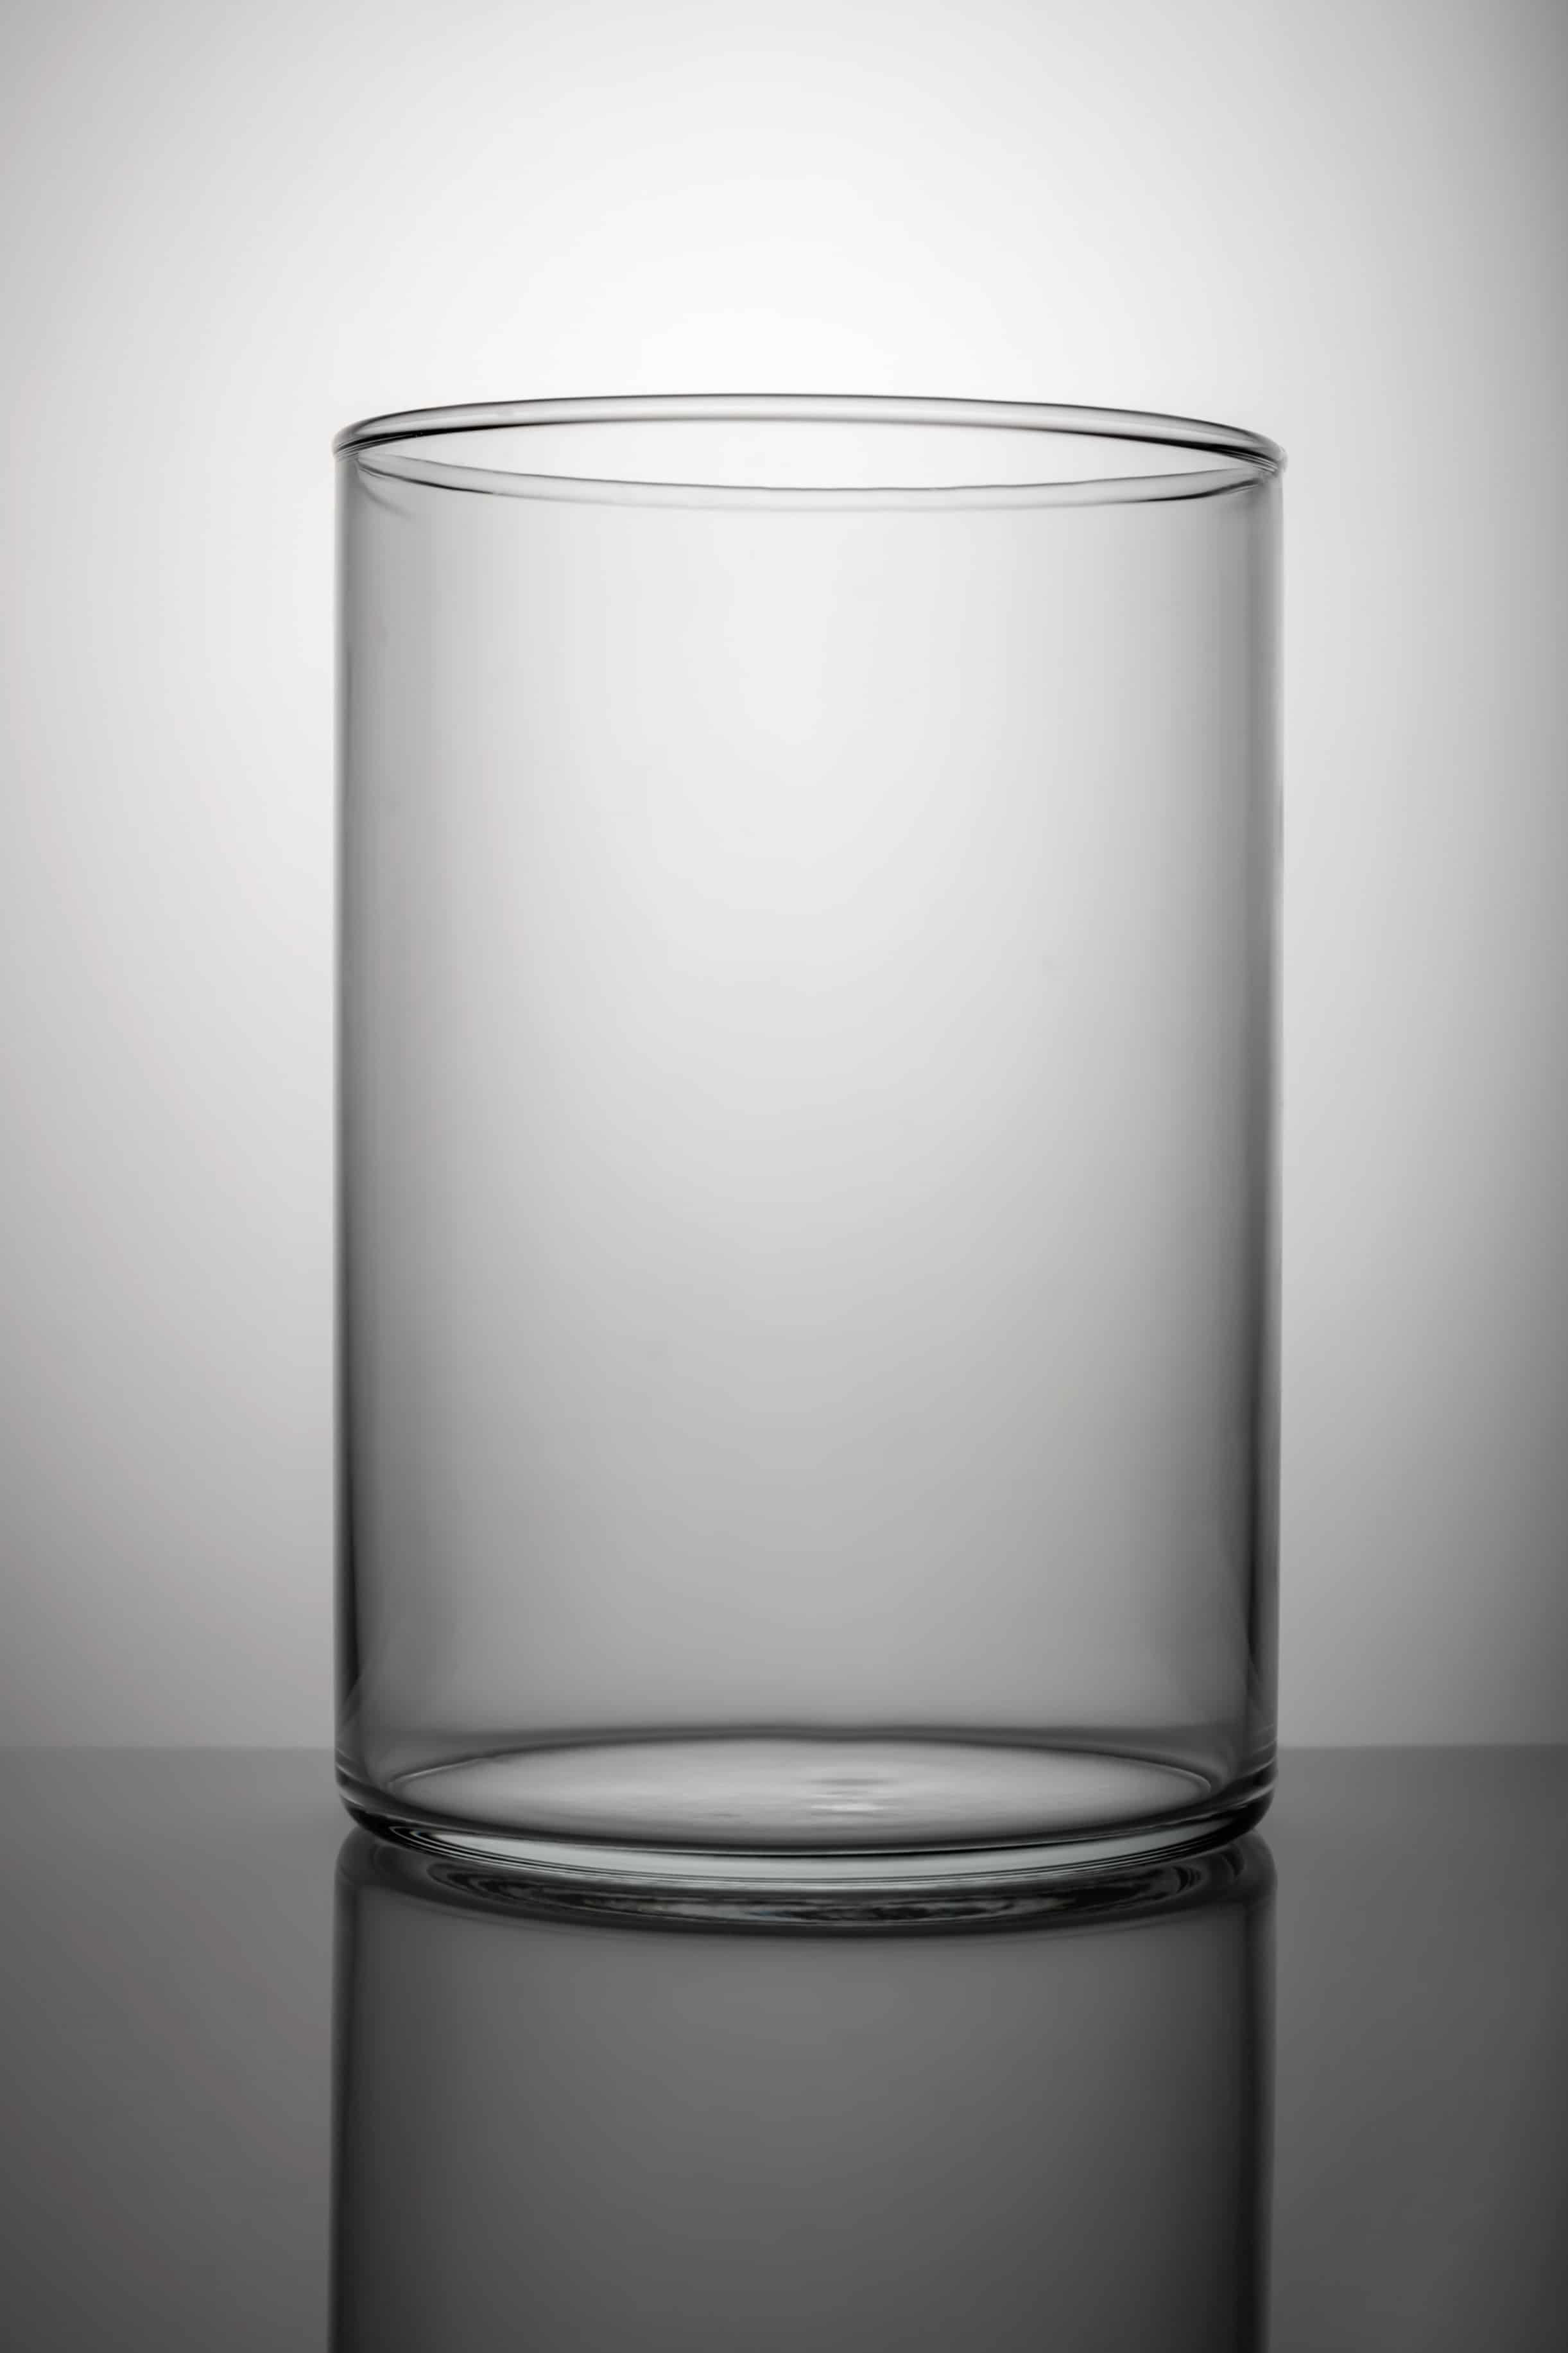 empty glass vase